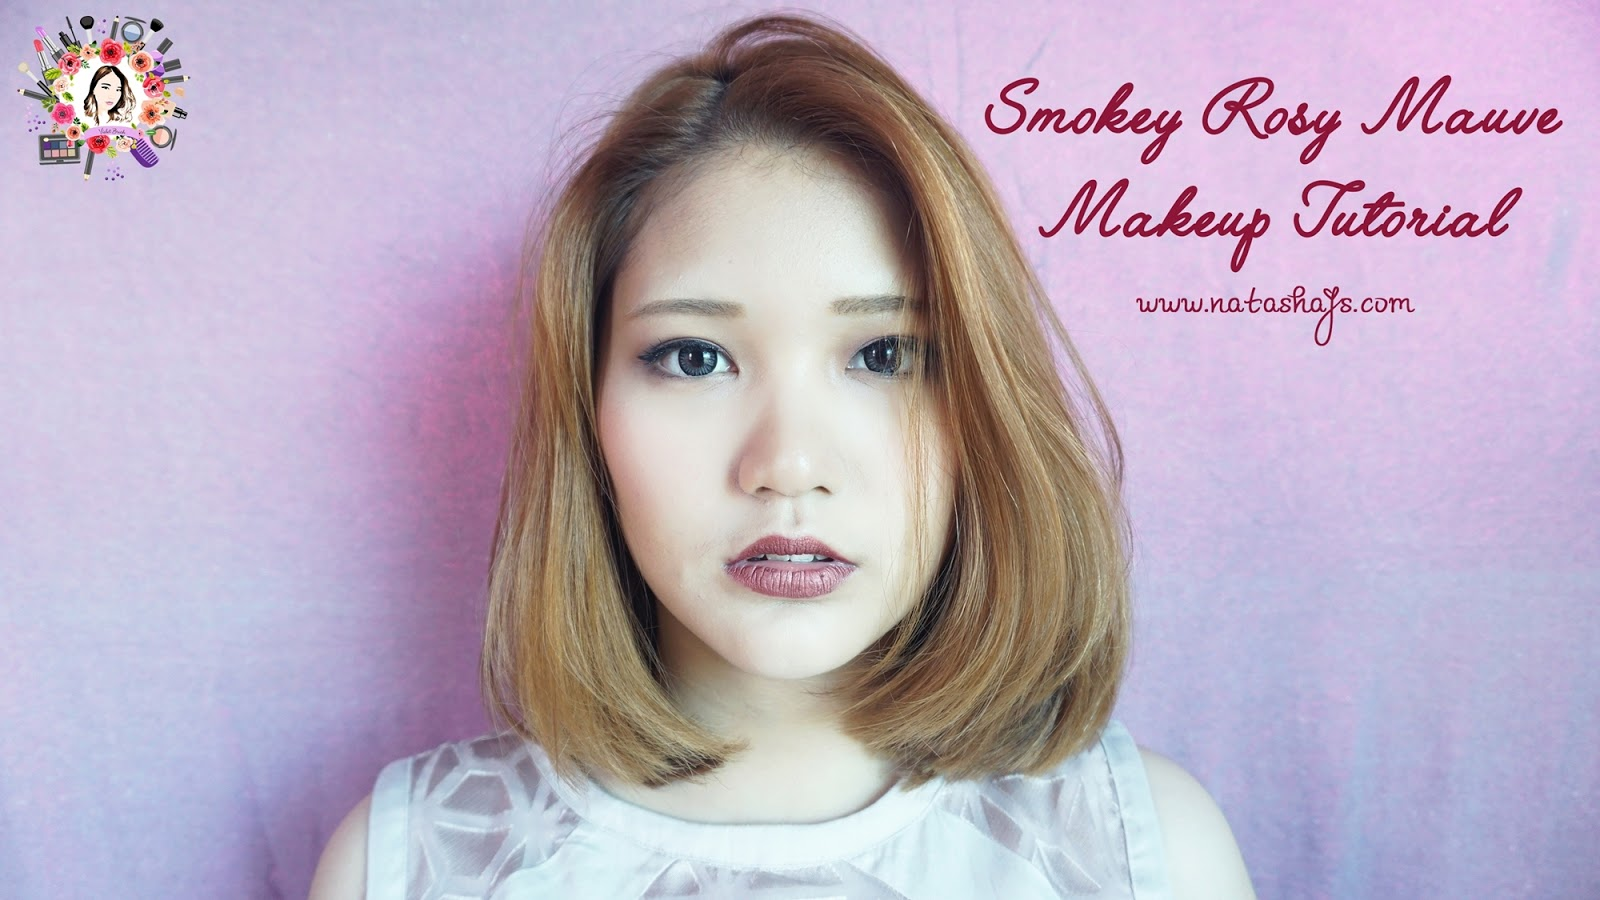 smokey-rose-mauve-makeup-tutorial-indonesian-beauty-blogger-youtuber